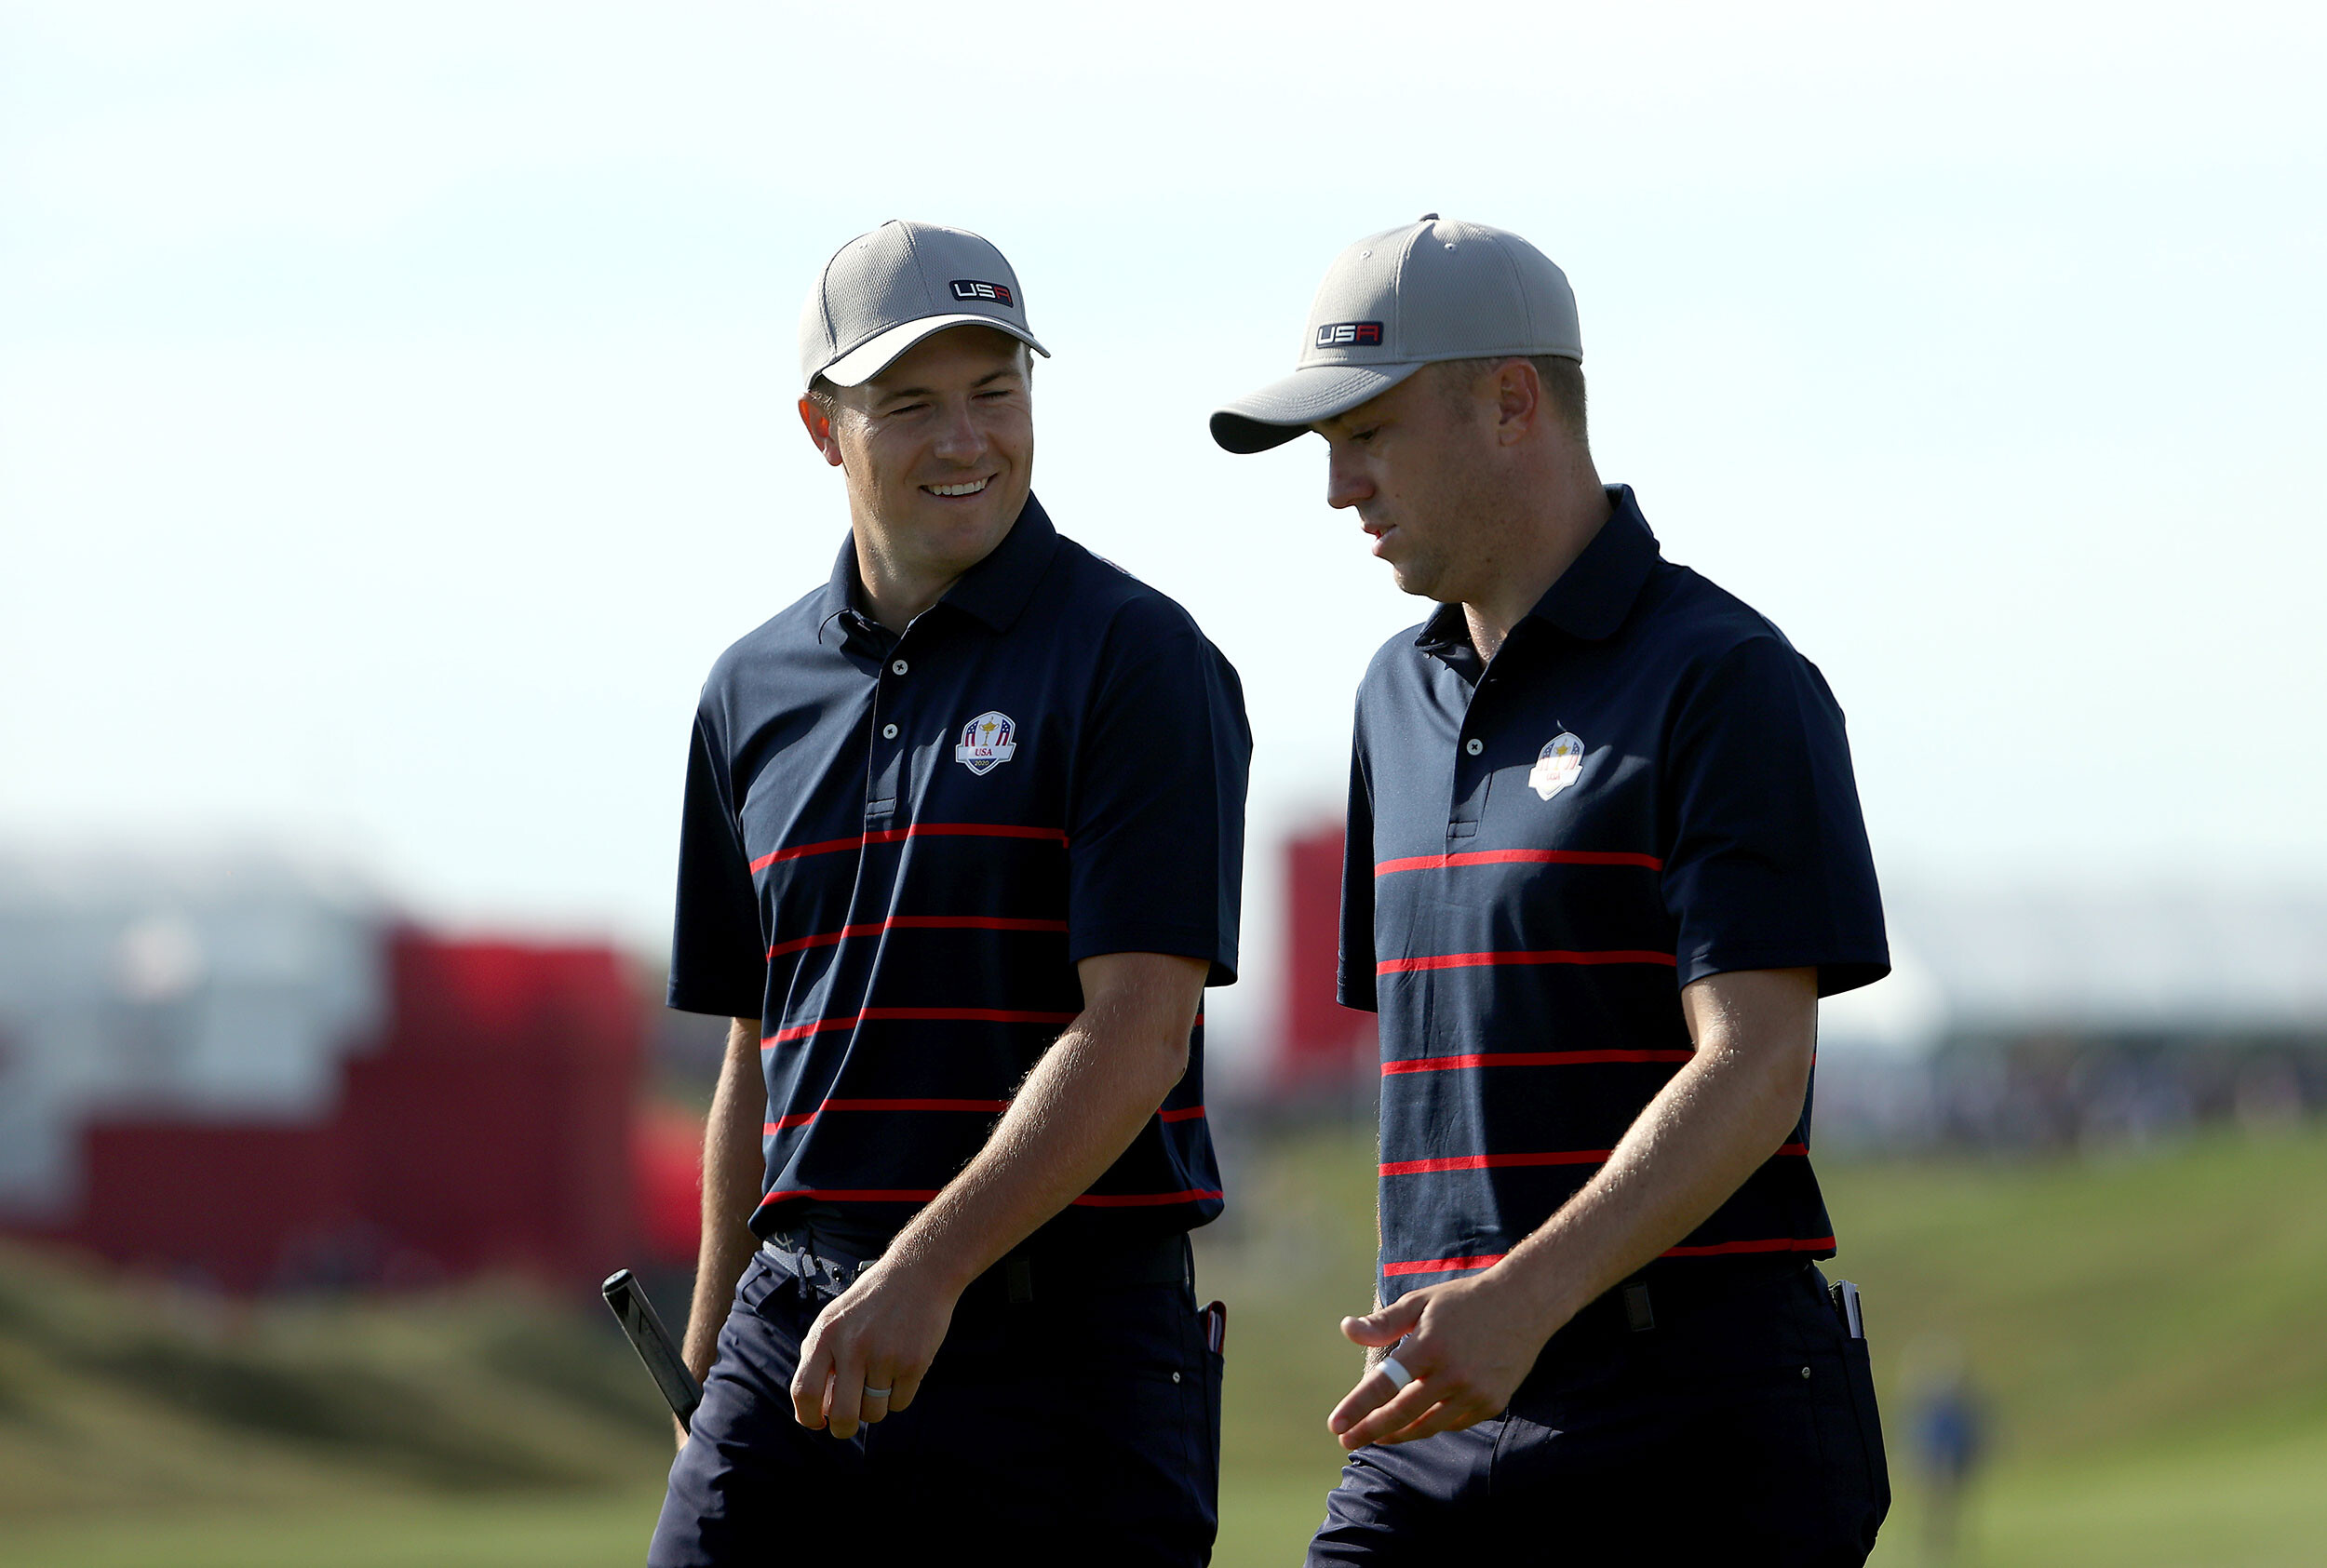 Jordan Spieth plays 'insane' almost-vertical shot, nearly falls into Lake Michigan at Ryder Cup